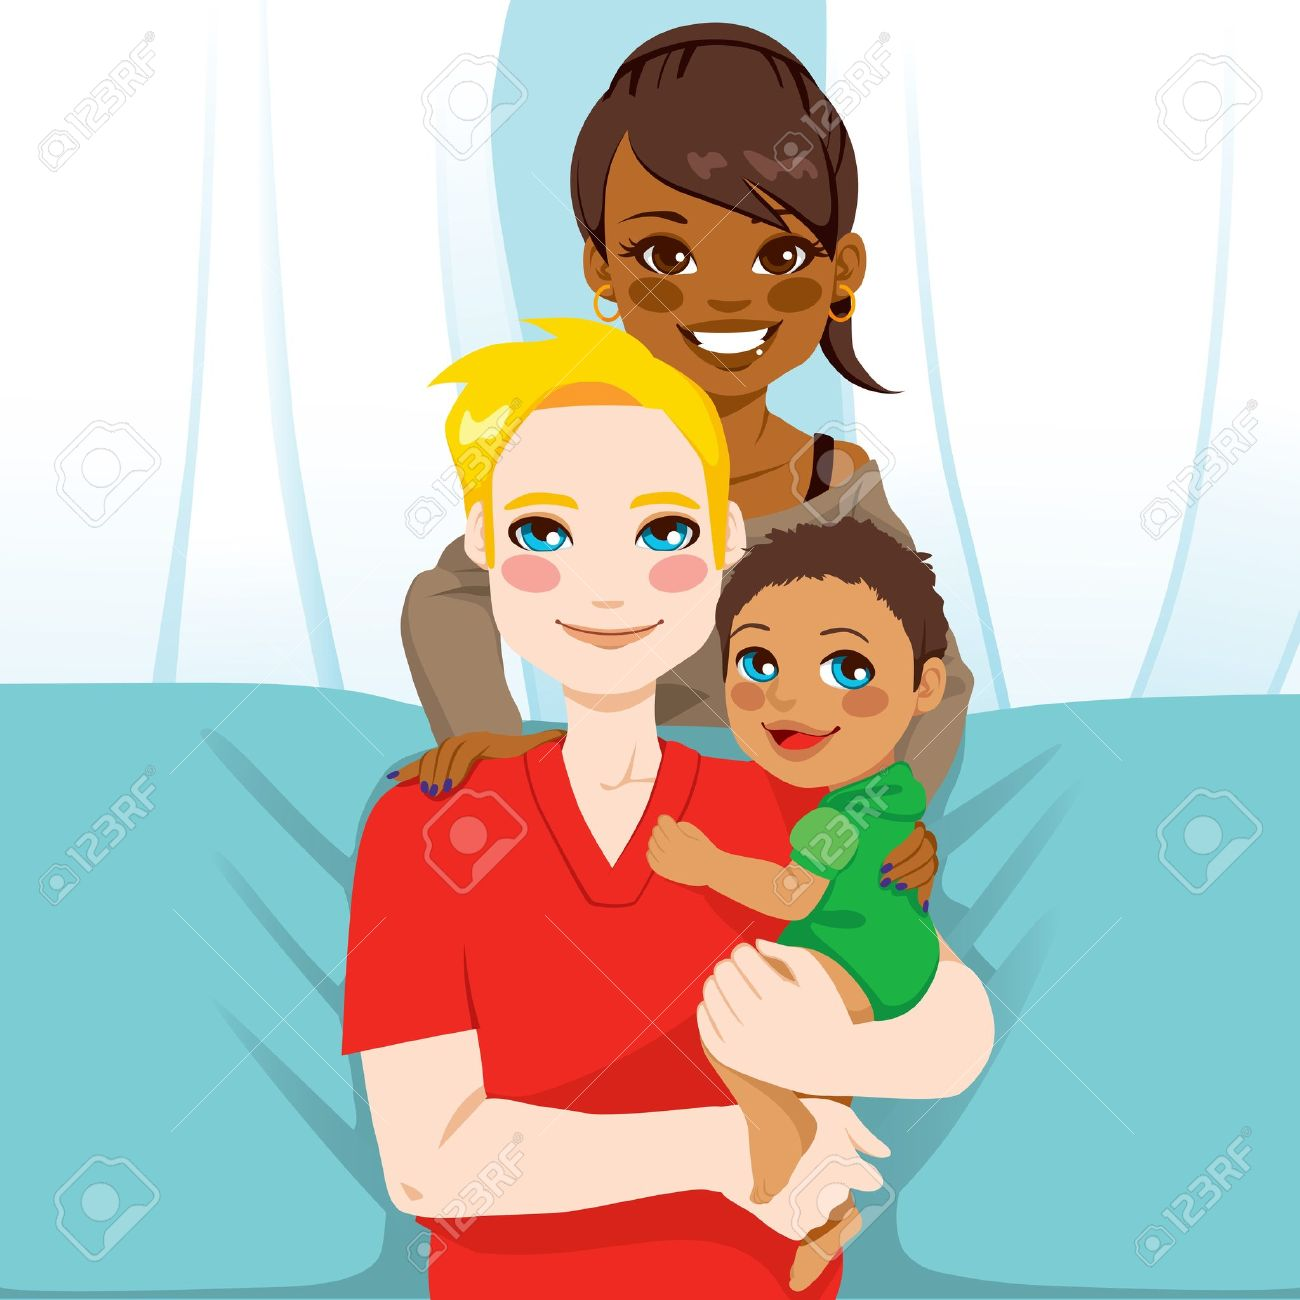 Happy interracial family of white husband and black wife with their mixed race child Stock Vector - 20350963